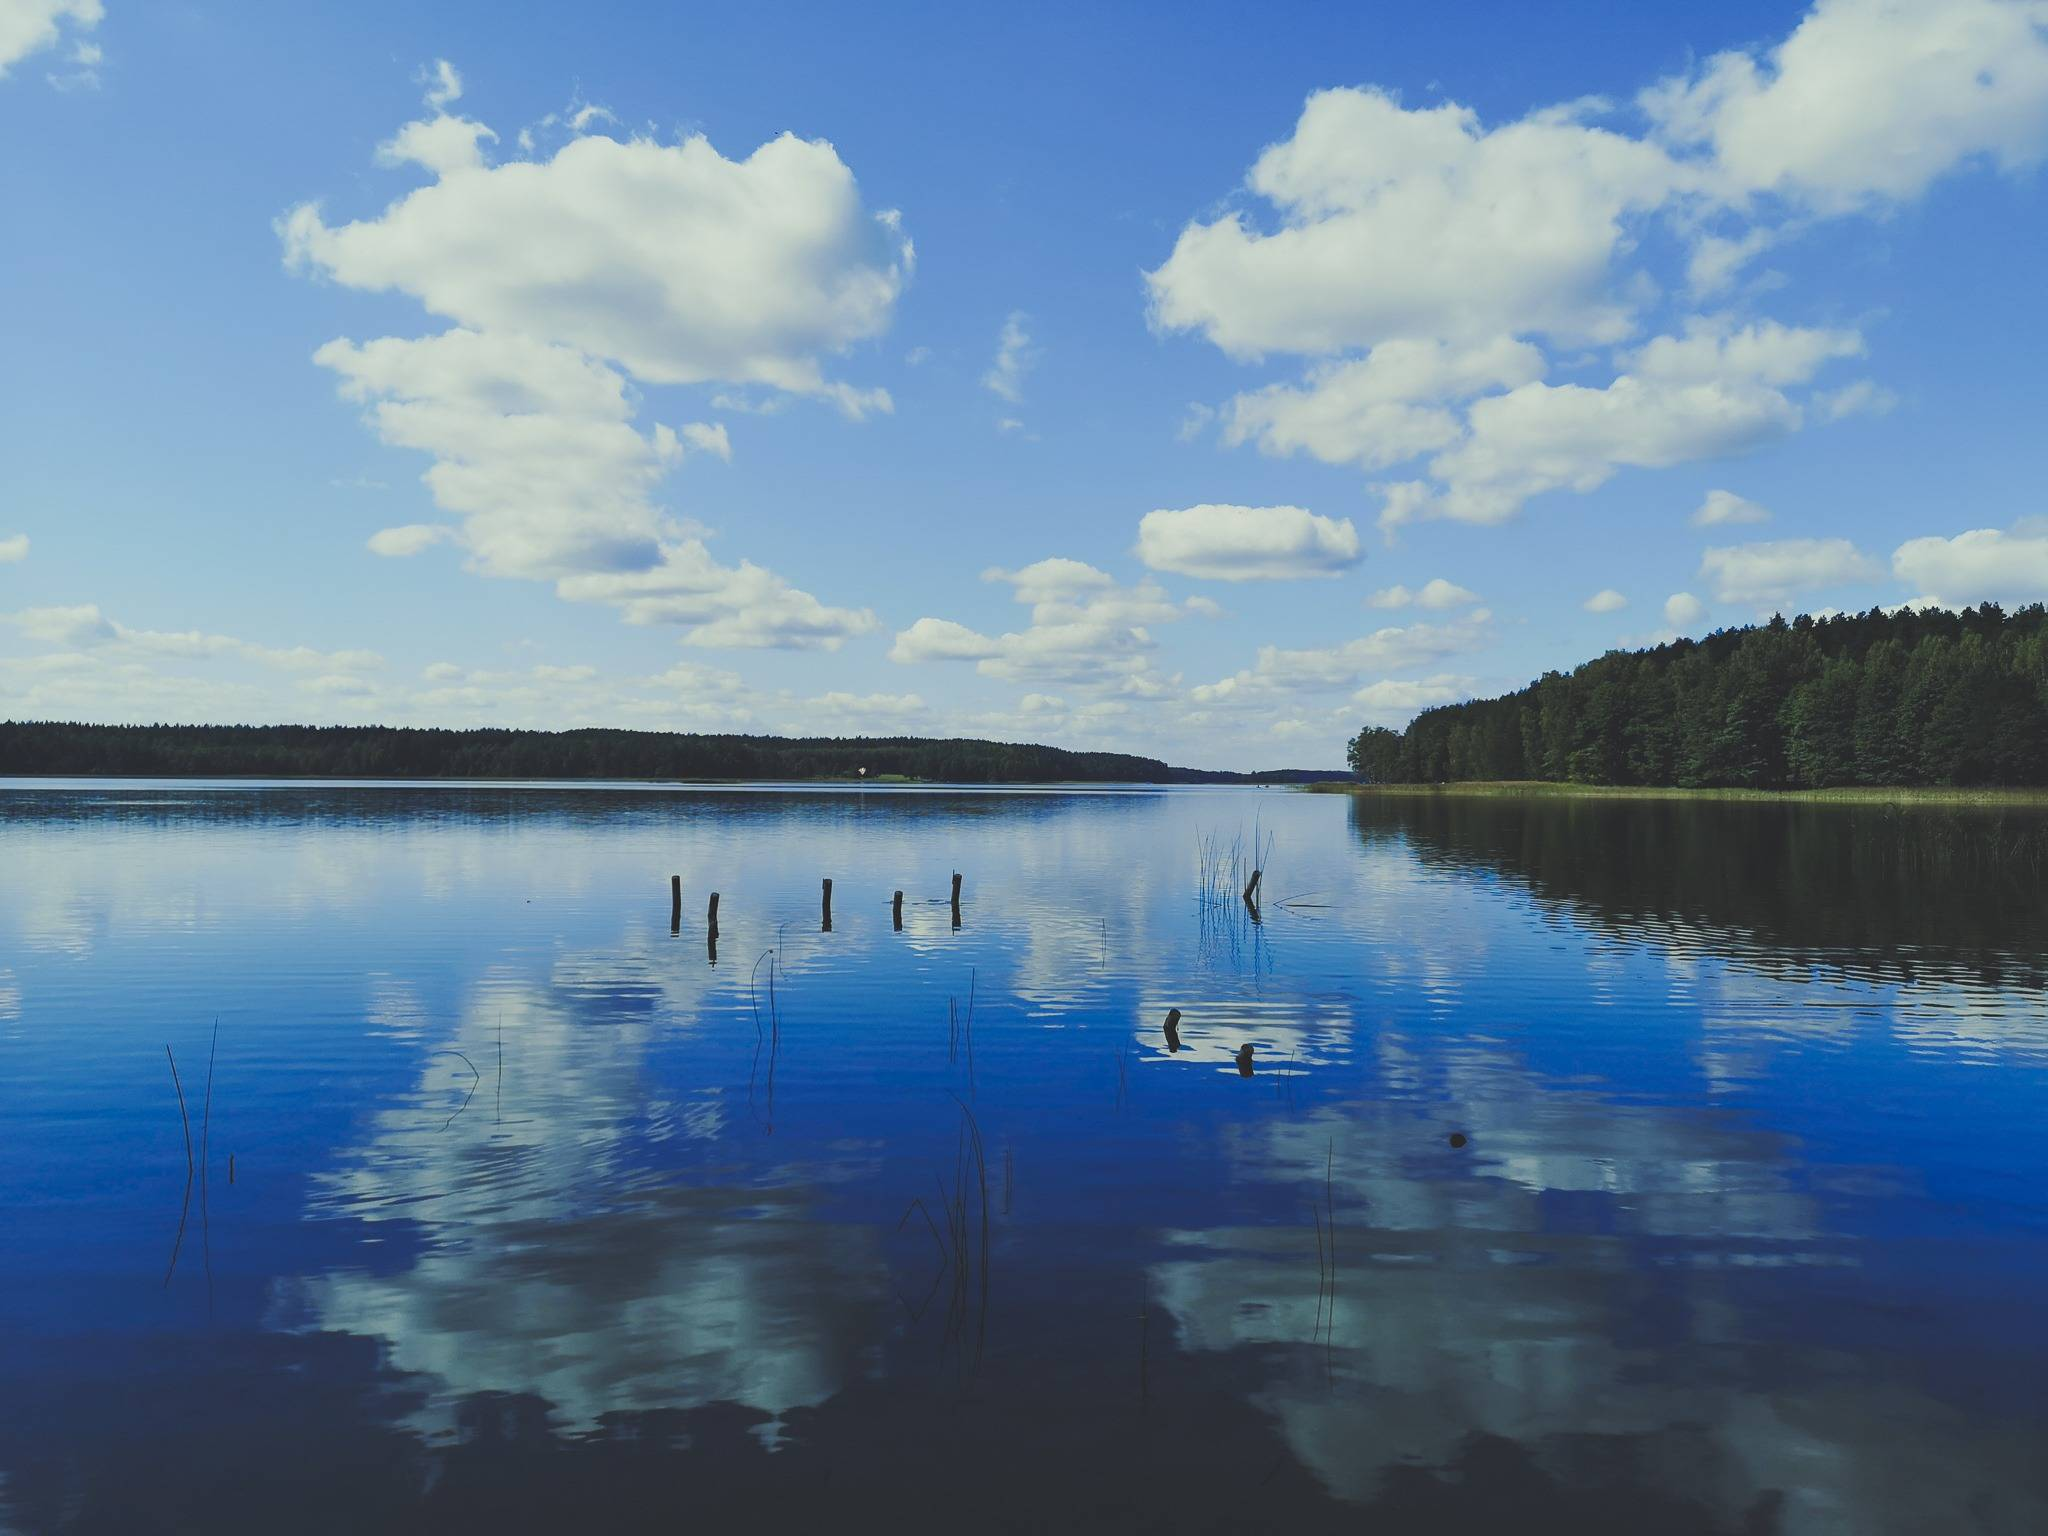 White Lakajai Lake in Labanoras Regional Park, Lithuania. Photo Alis Monte [CC BY-SA 4.0], via Connecting the Dots